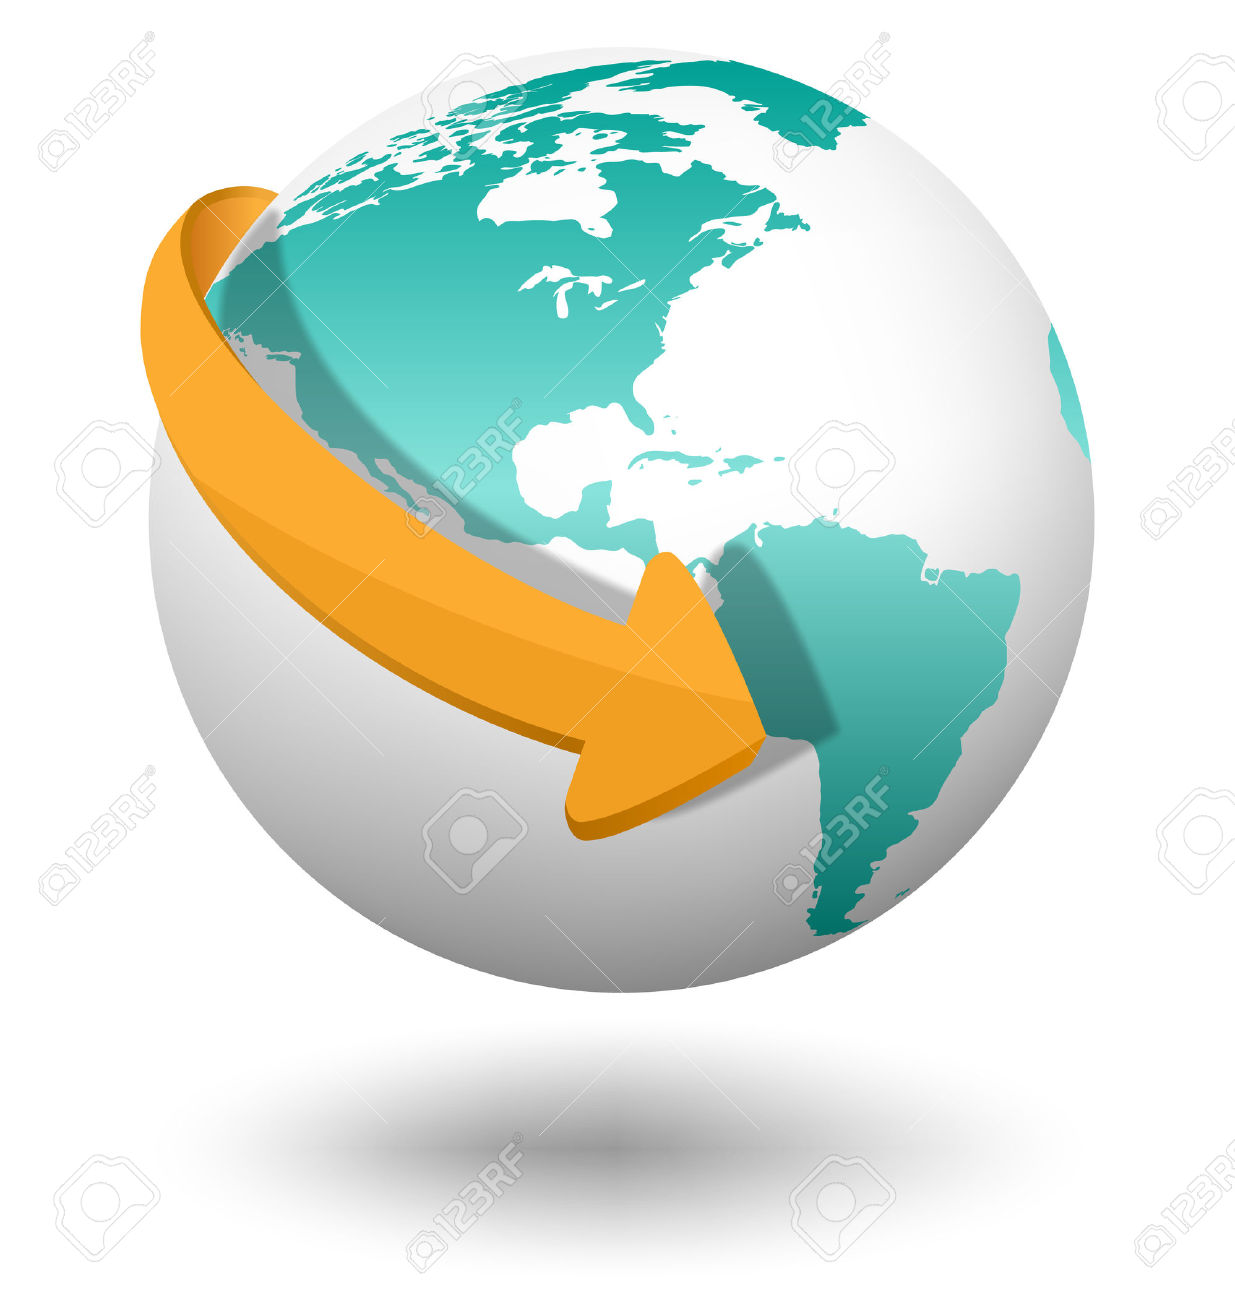 Clipart globe with arrow svg Emblem With White Globe And Orange Arrow Isolated On White ... svg